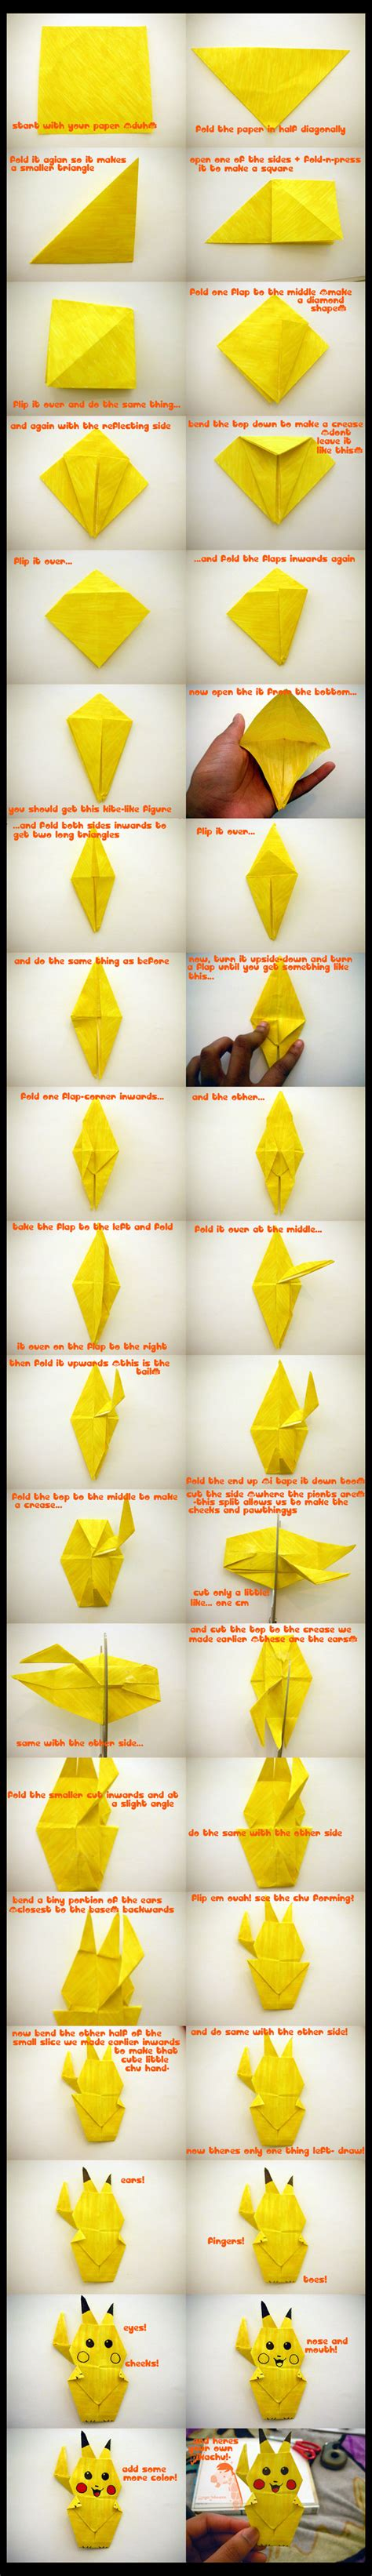 how to make an origami pikachu step by step how to make an origami pikachu by wesroz on deviantart